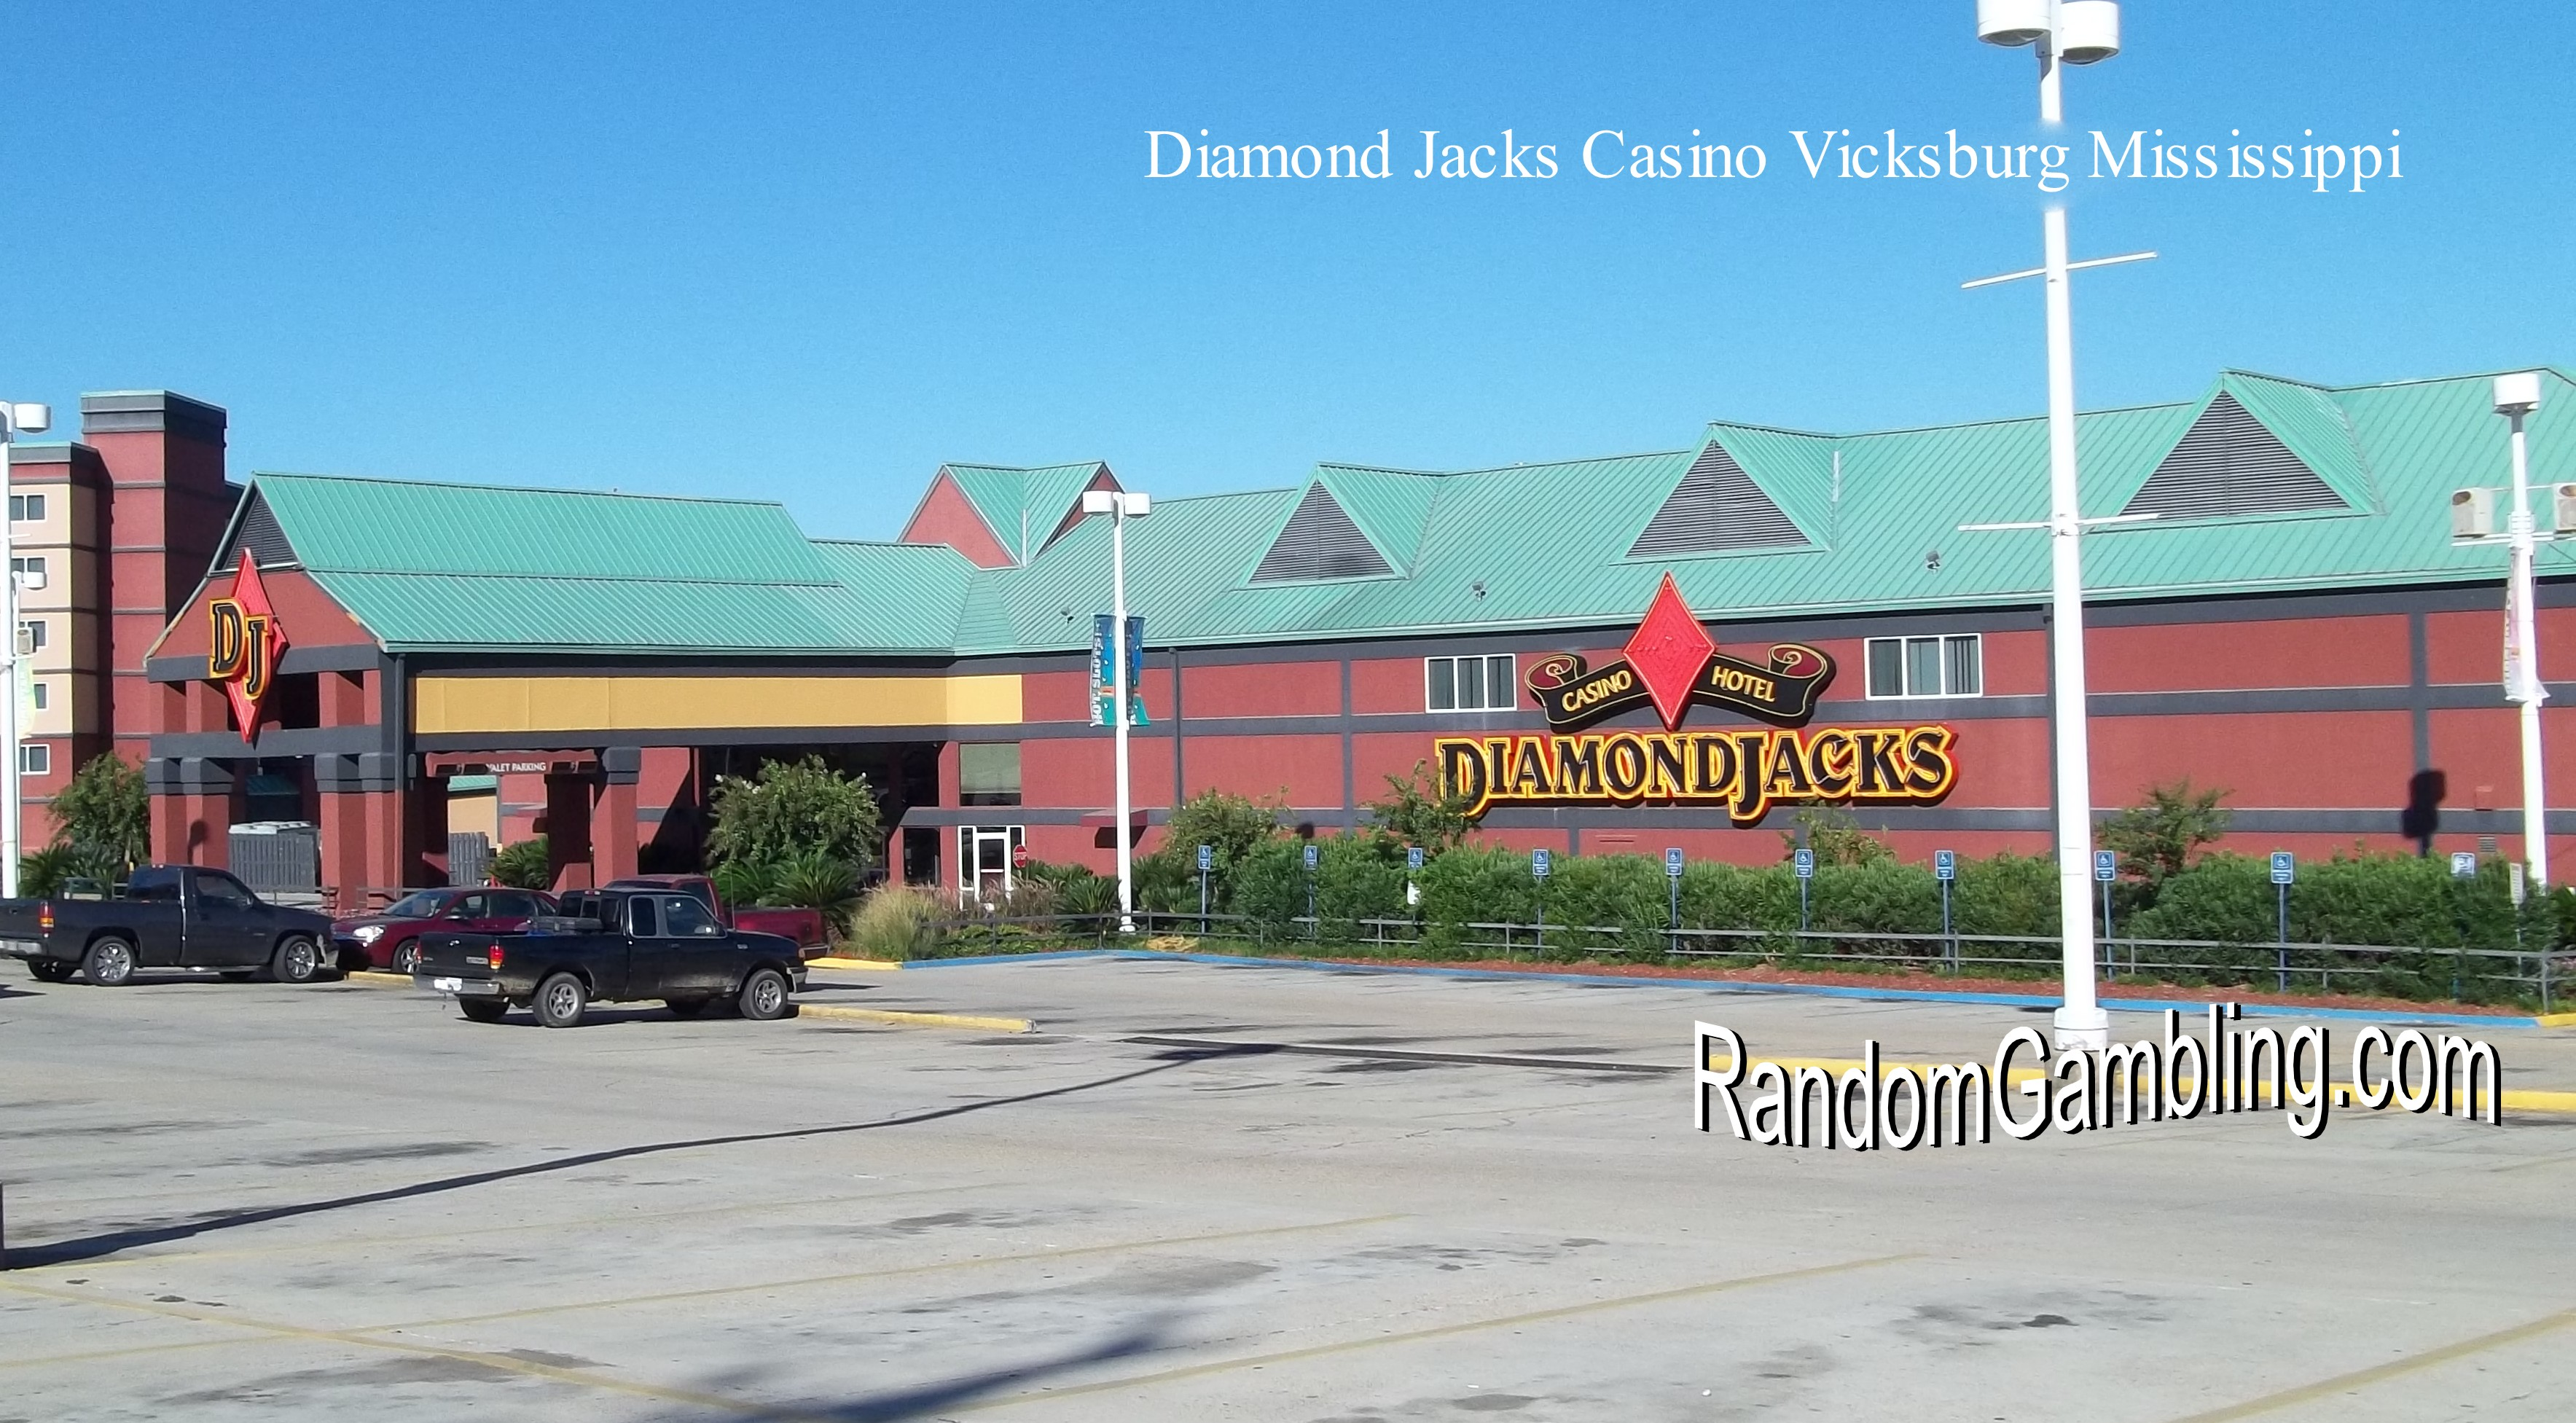 Diamond jacks casino vicksburg miss